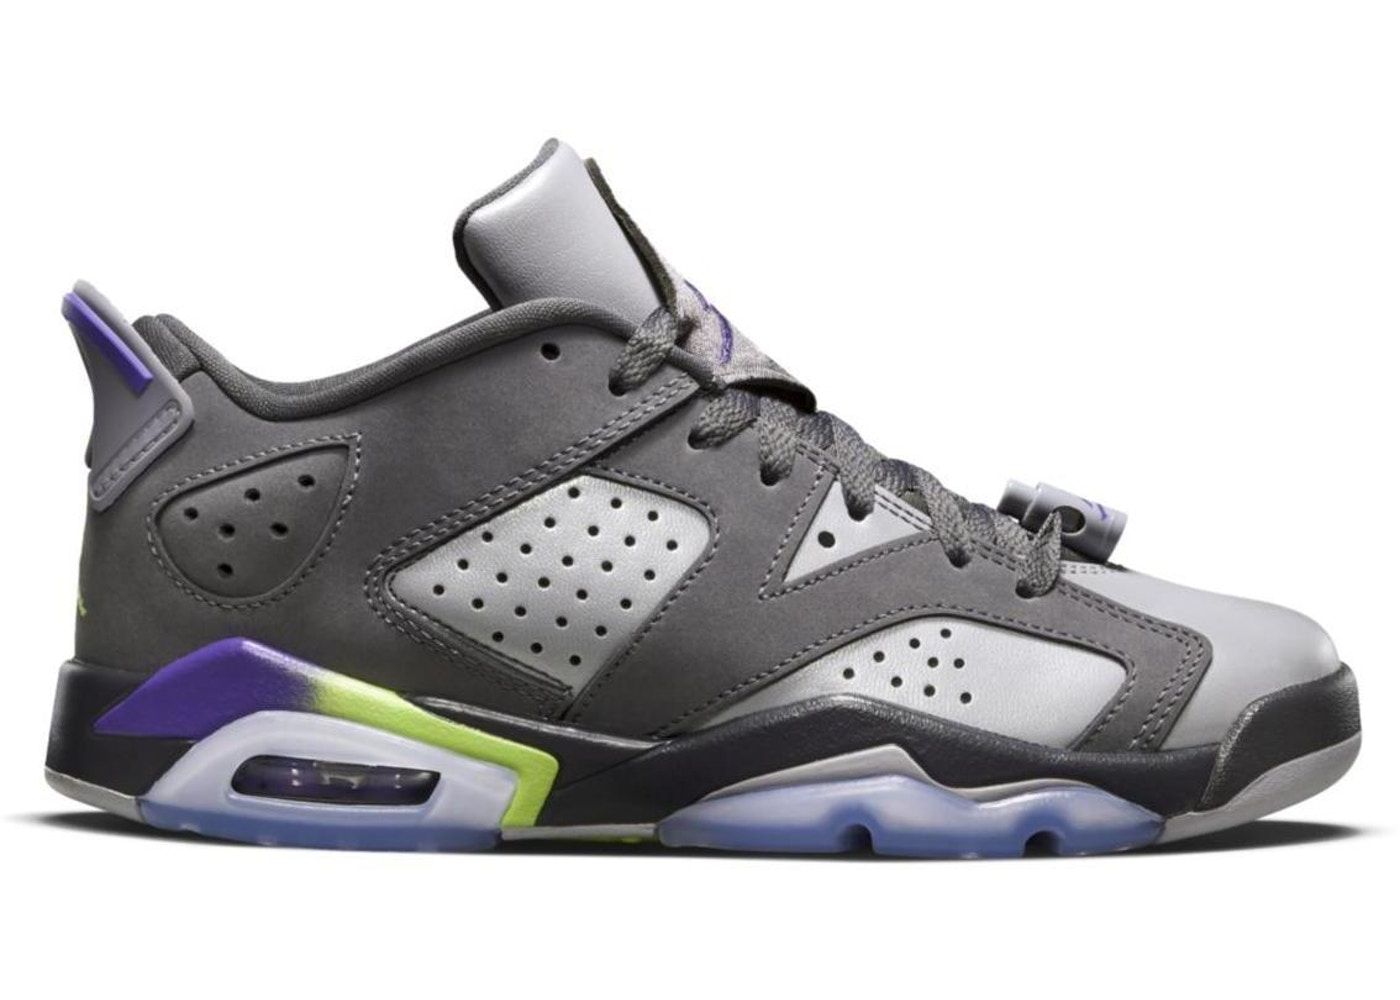 separation shoes 53187 4f8df Jordan 6 Retro Low Dark Grey (GS)